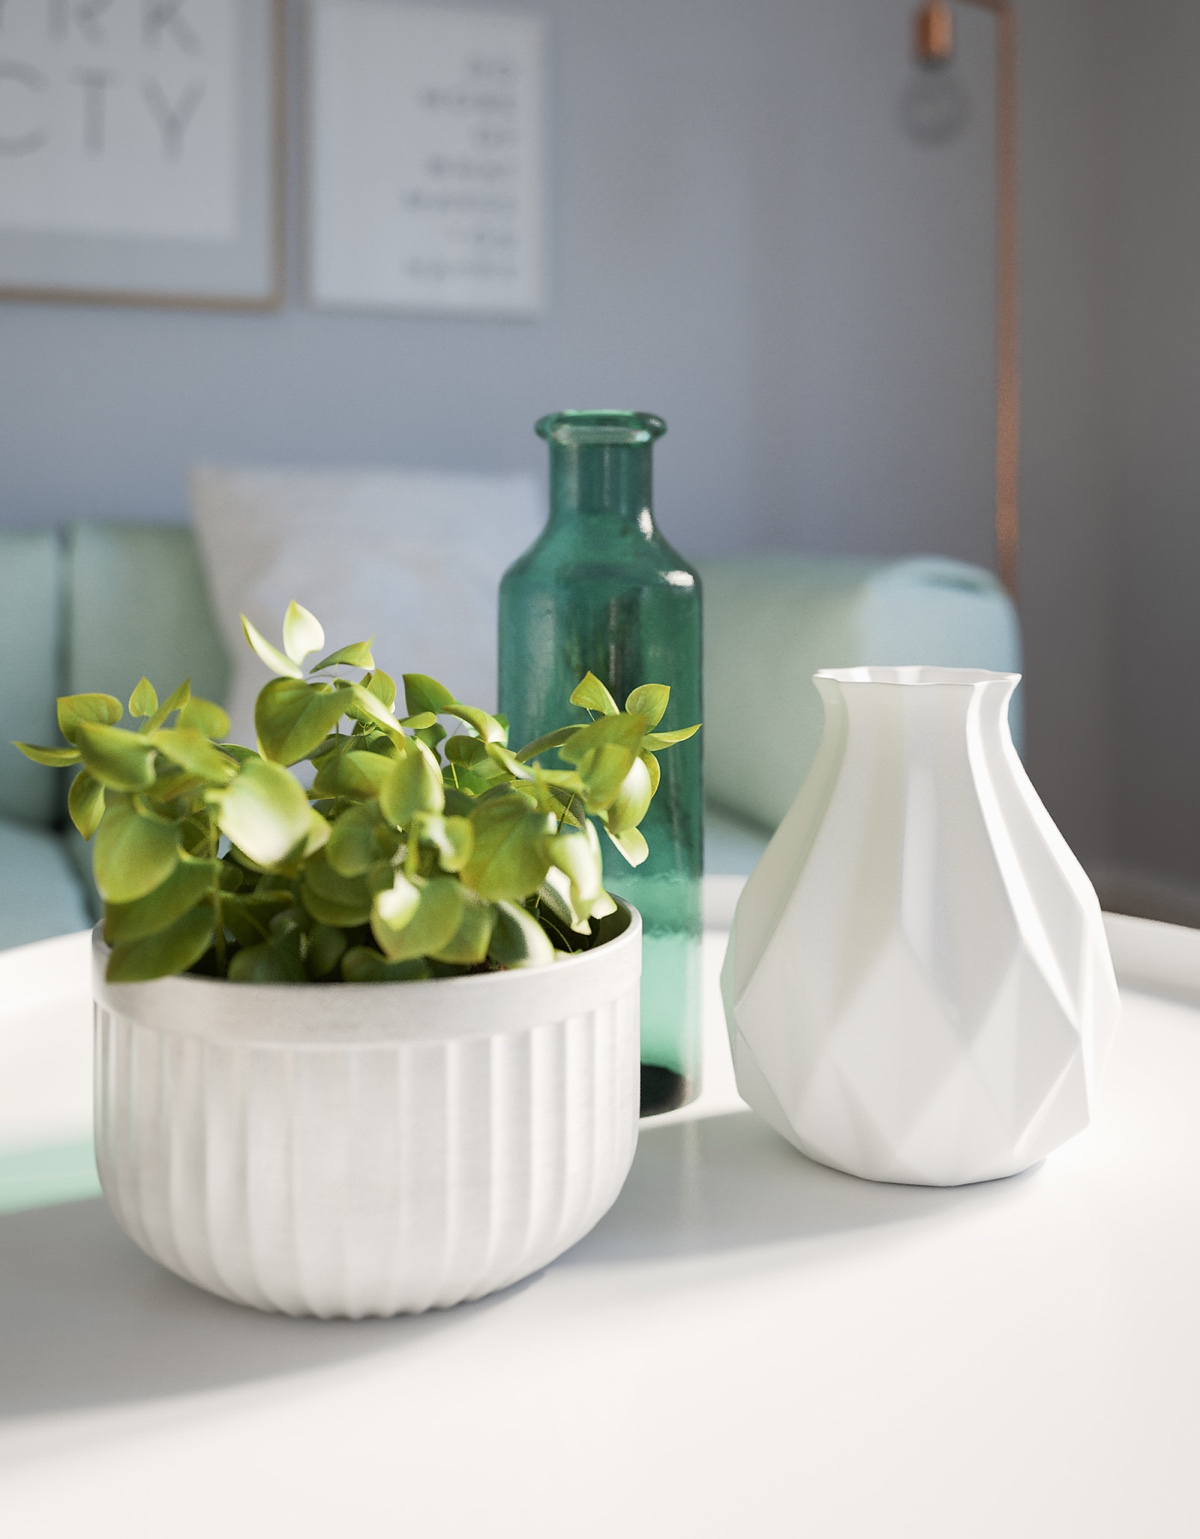 Cute White Ceramic Planters - 3 modern studio apartments with glass walled bedrooms